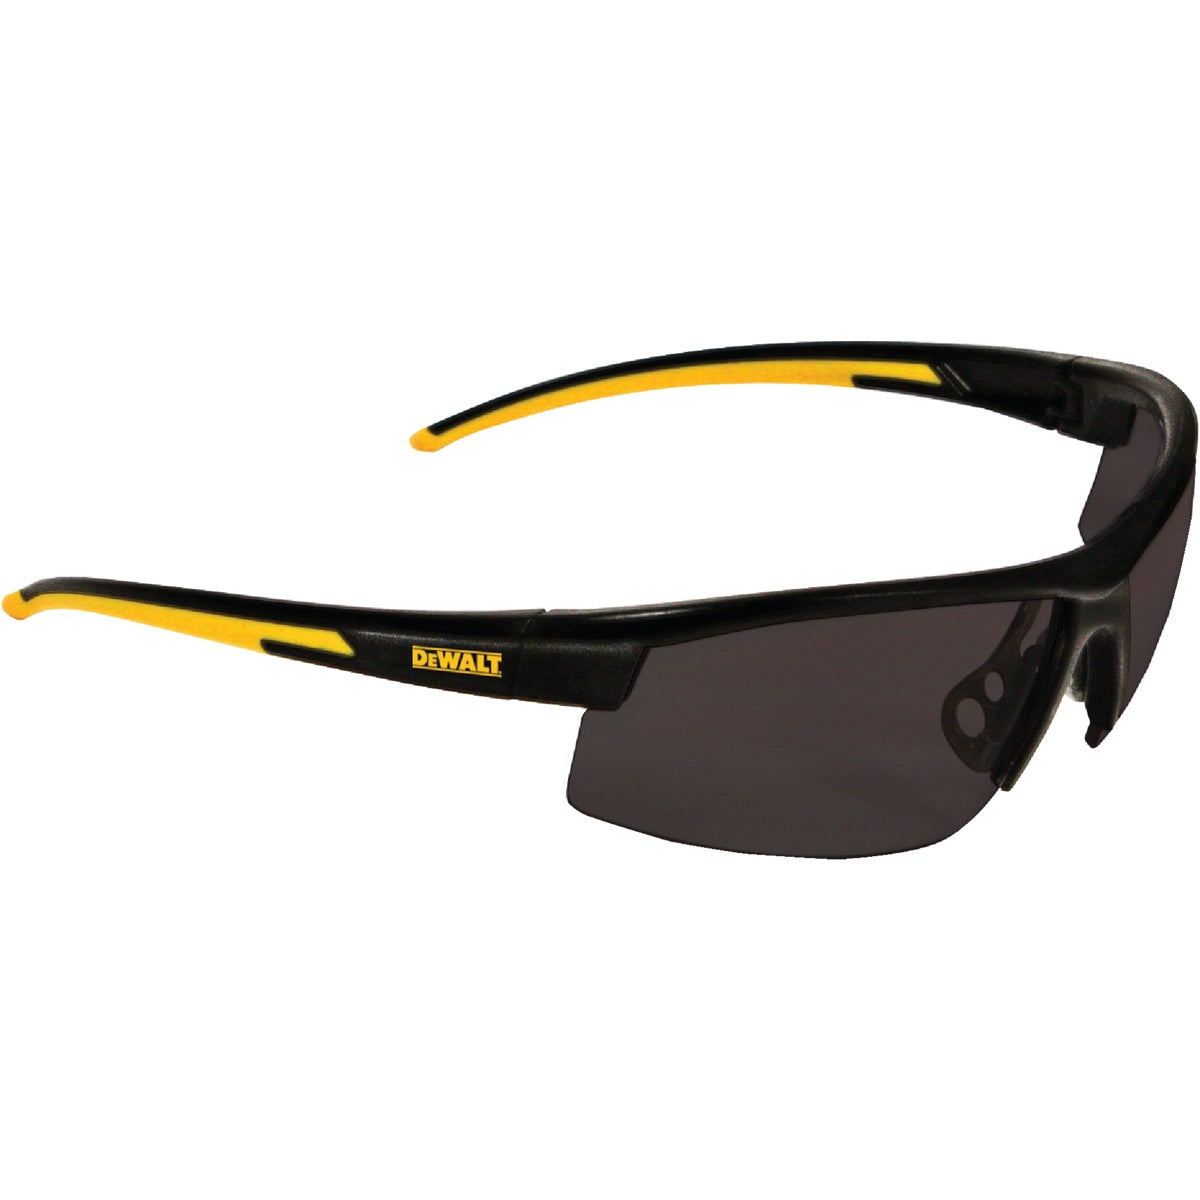 POLARIZED SAFETY GLASSES - DPG90E-PC by Radians